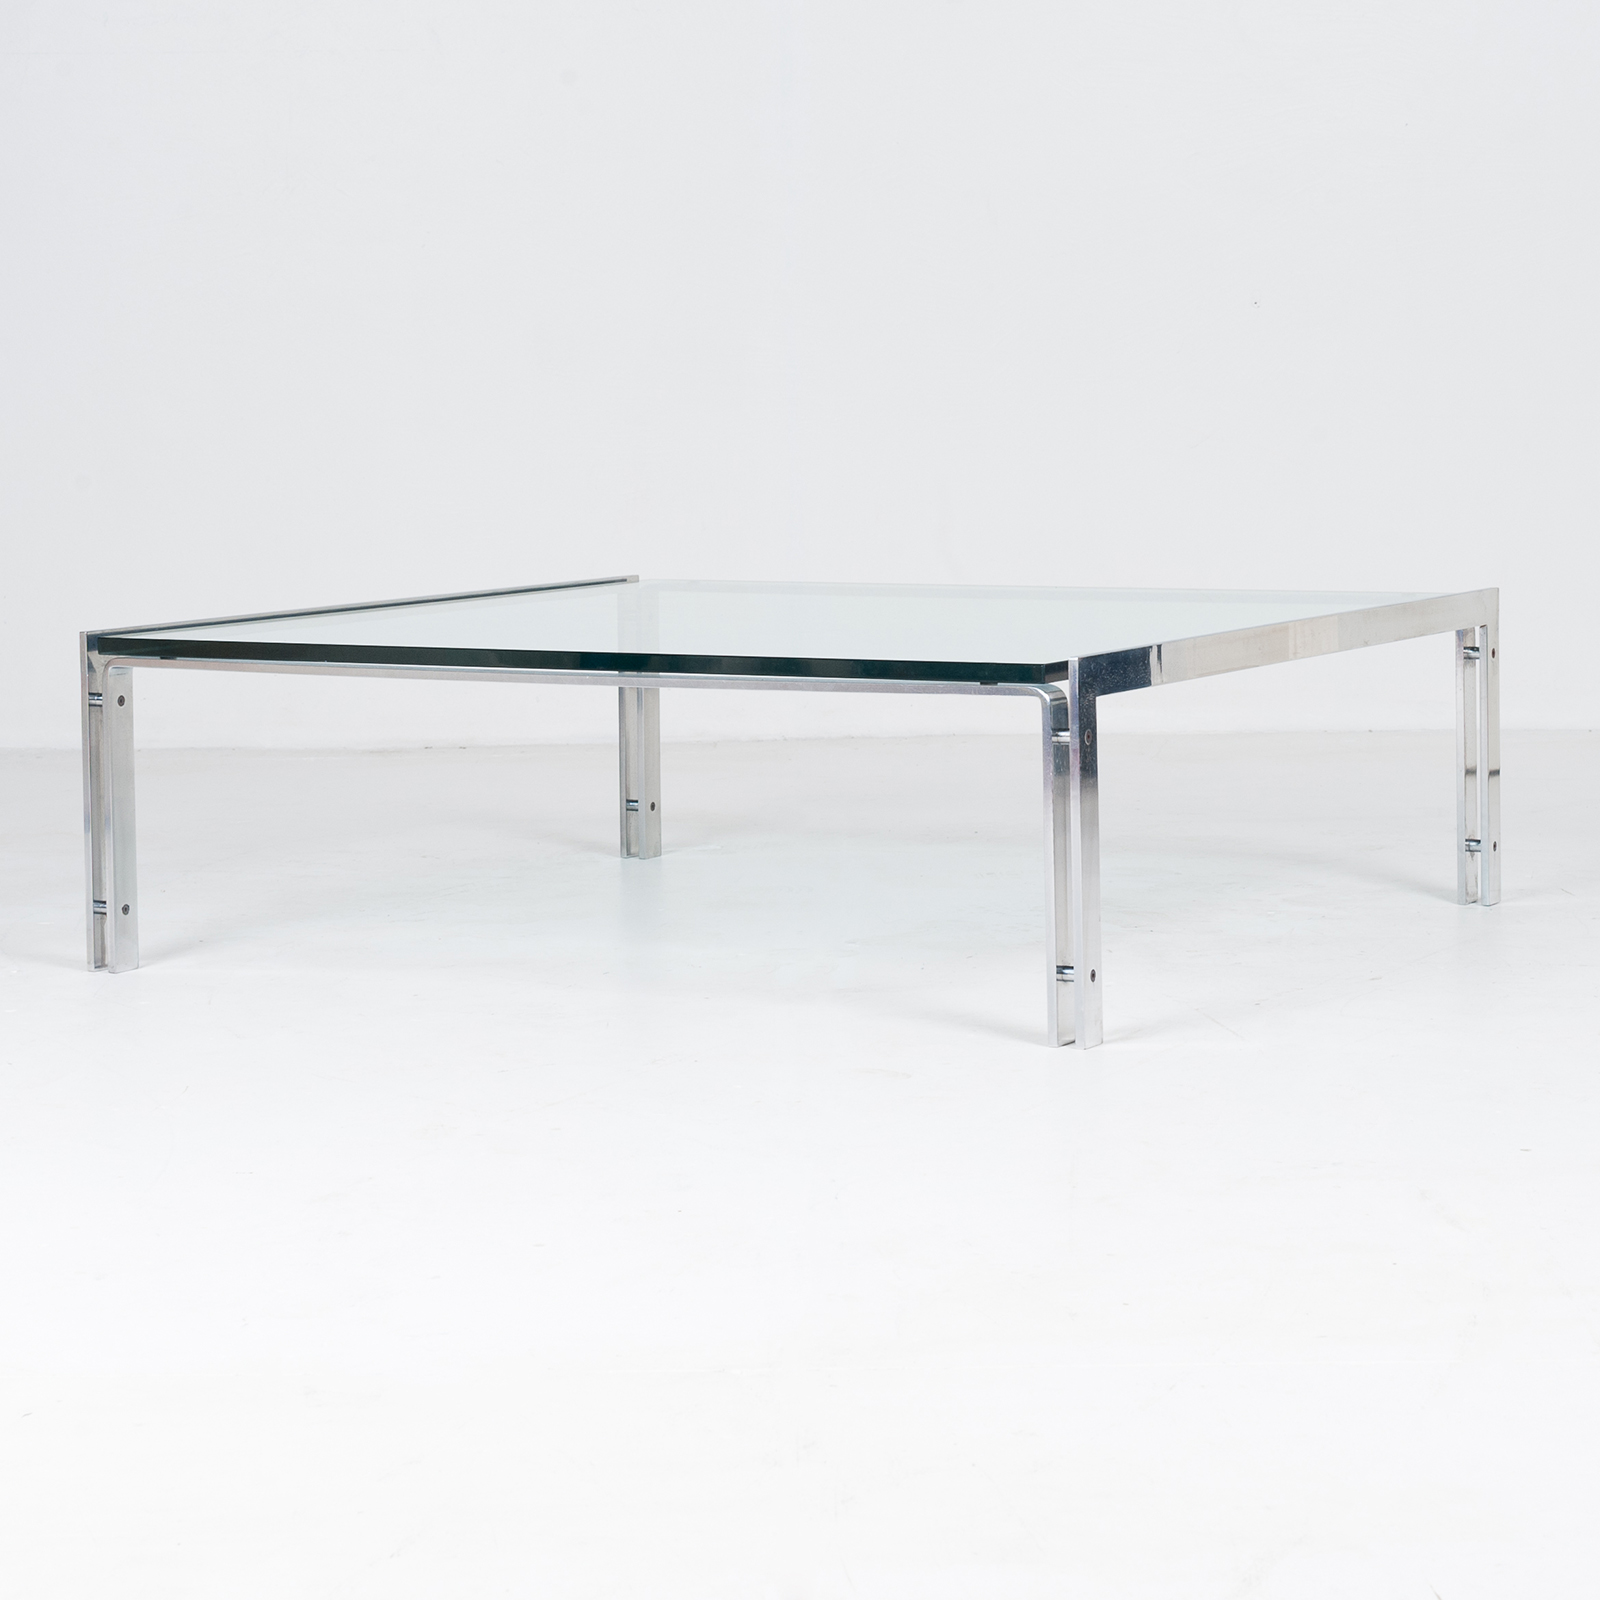 Coffee Table By Metaform In Glass And Chrome, 1970s, The Netherlands59